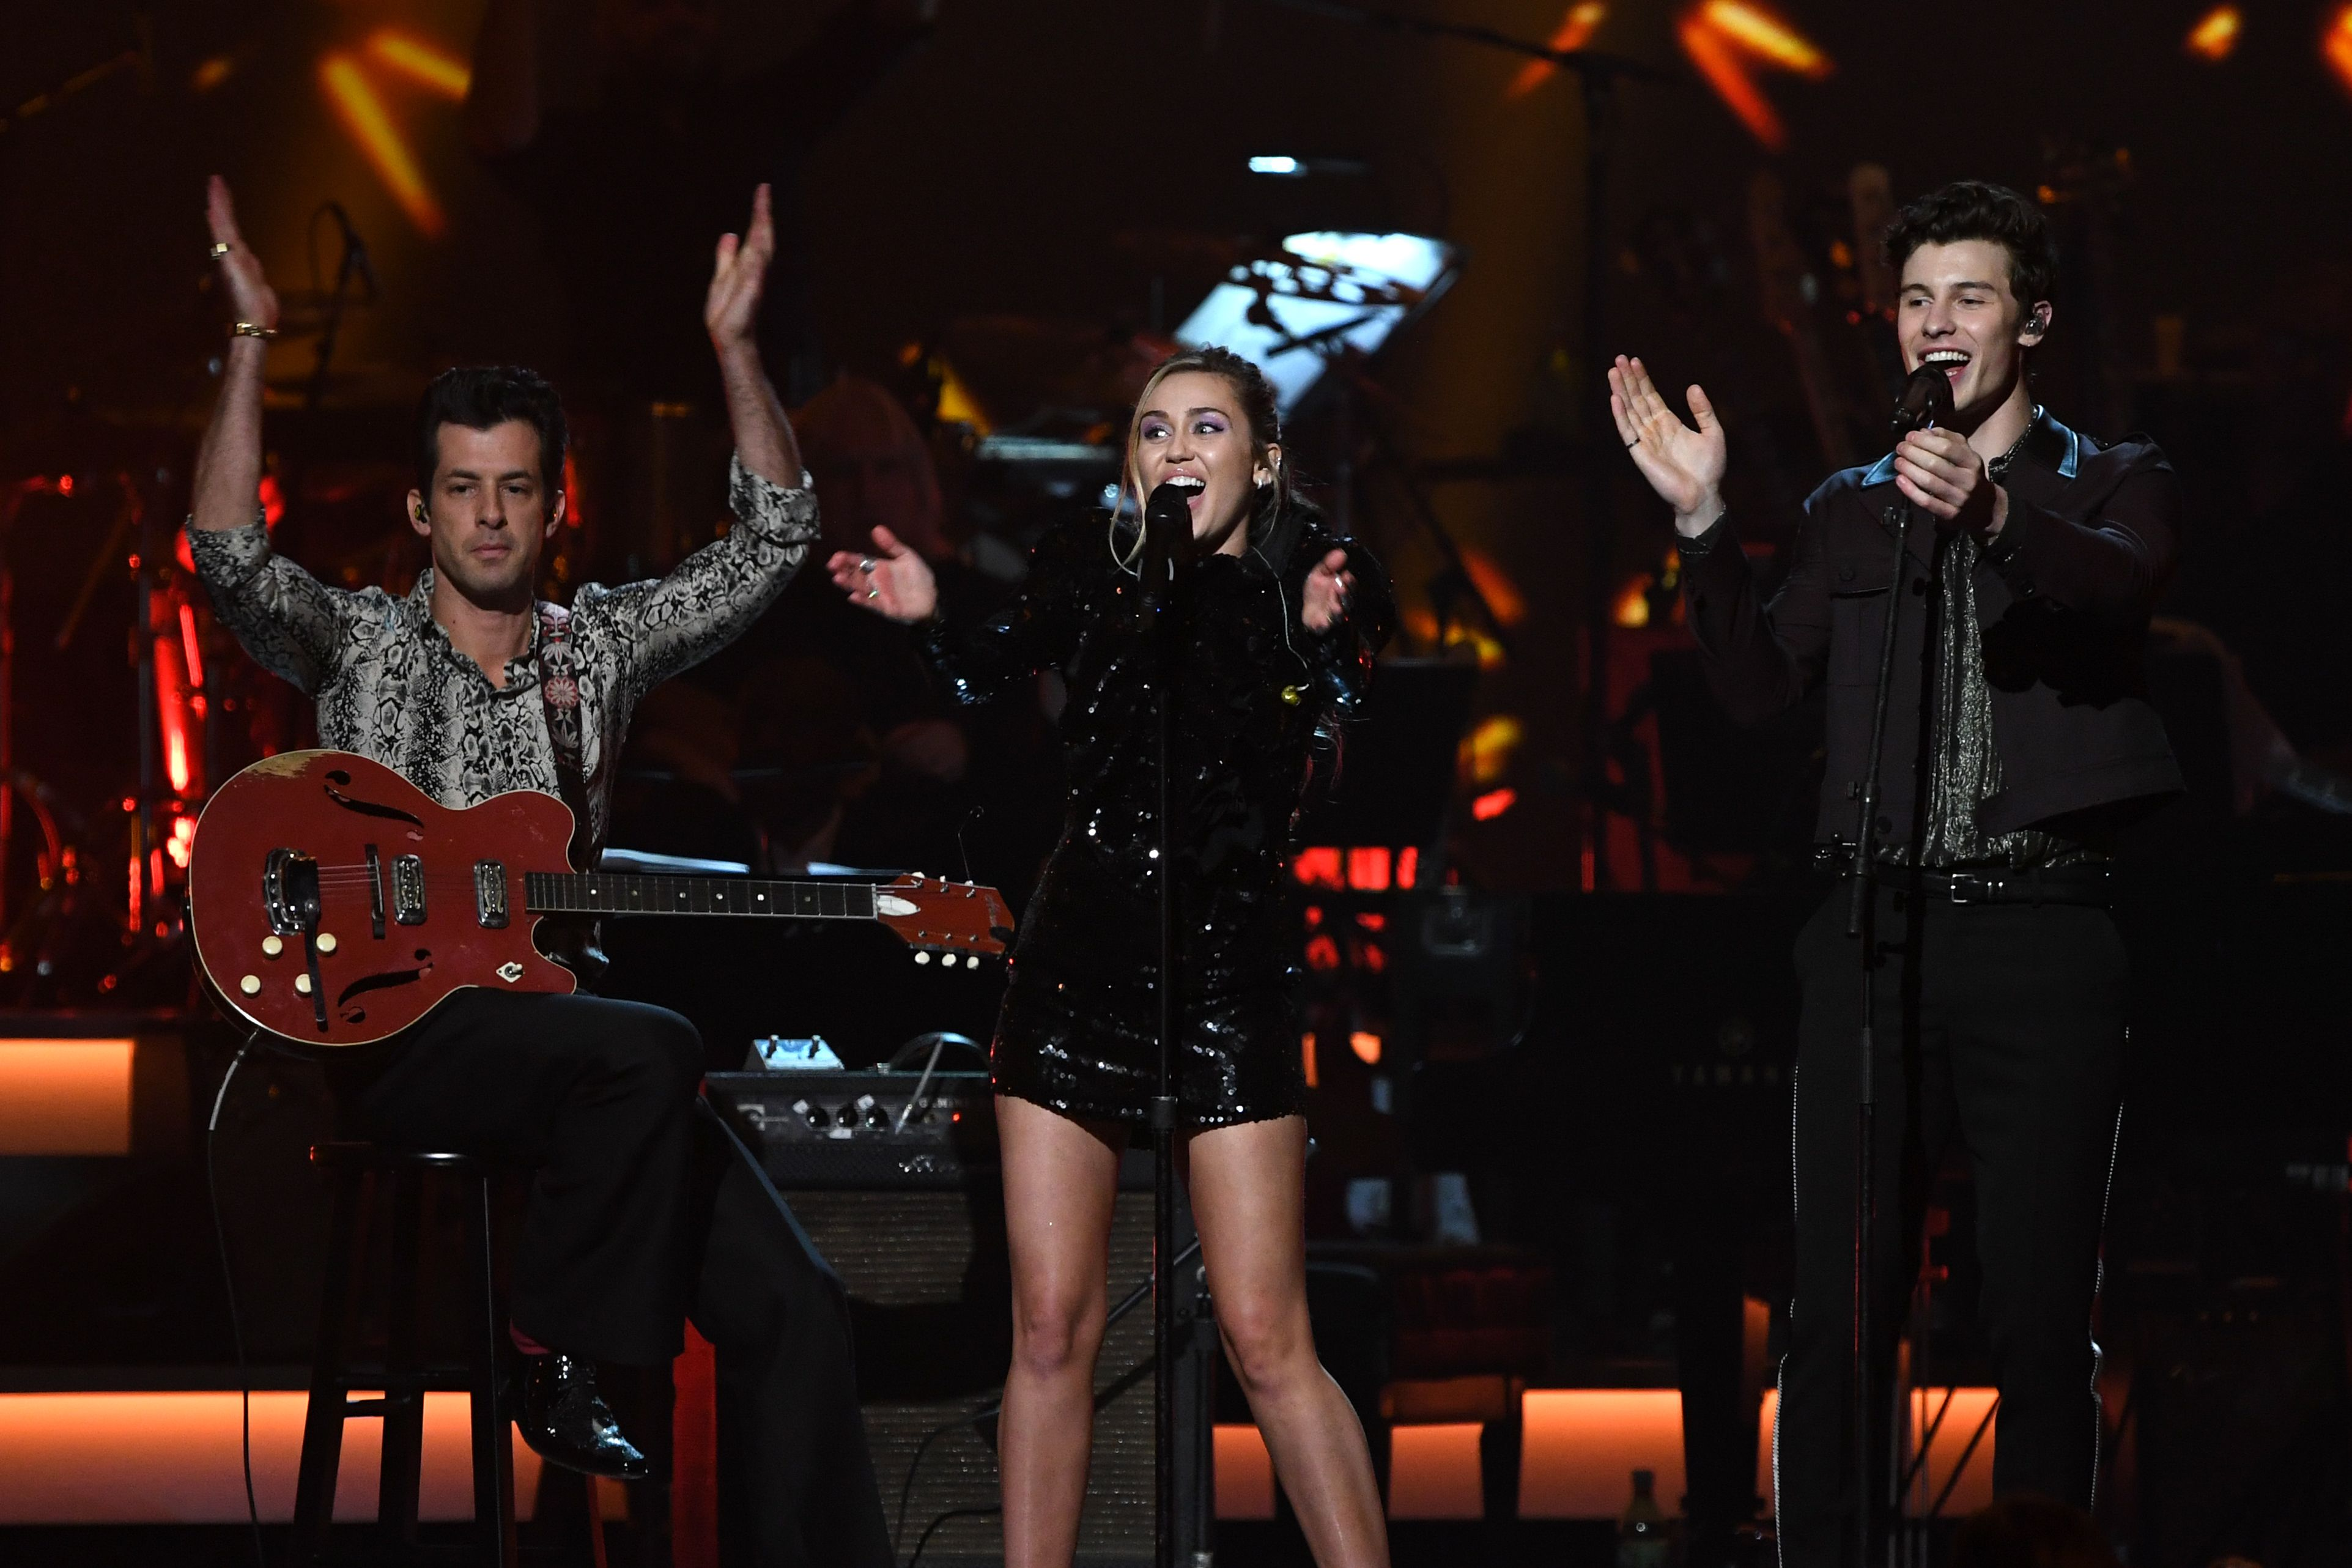 (L-R) Mark Ronson, Miley Cyrus and Shawn Mendes perform at the 2019 MusiCares Person Of The Year event